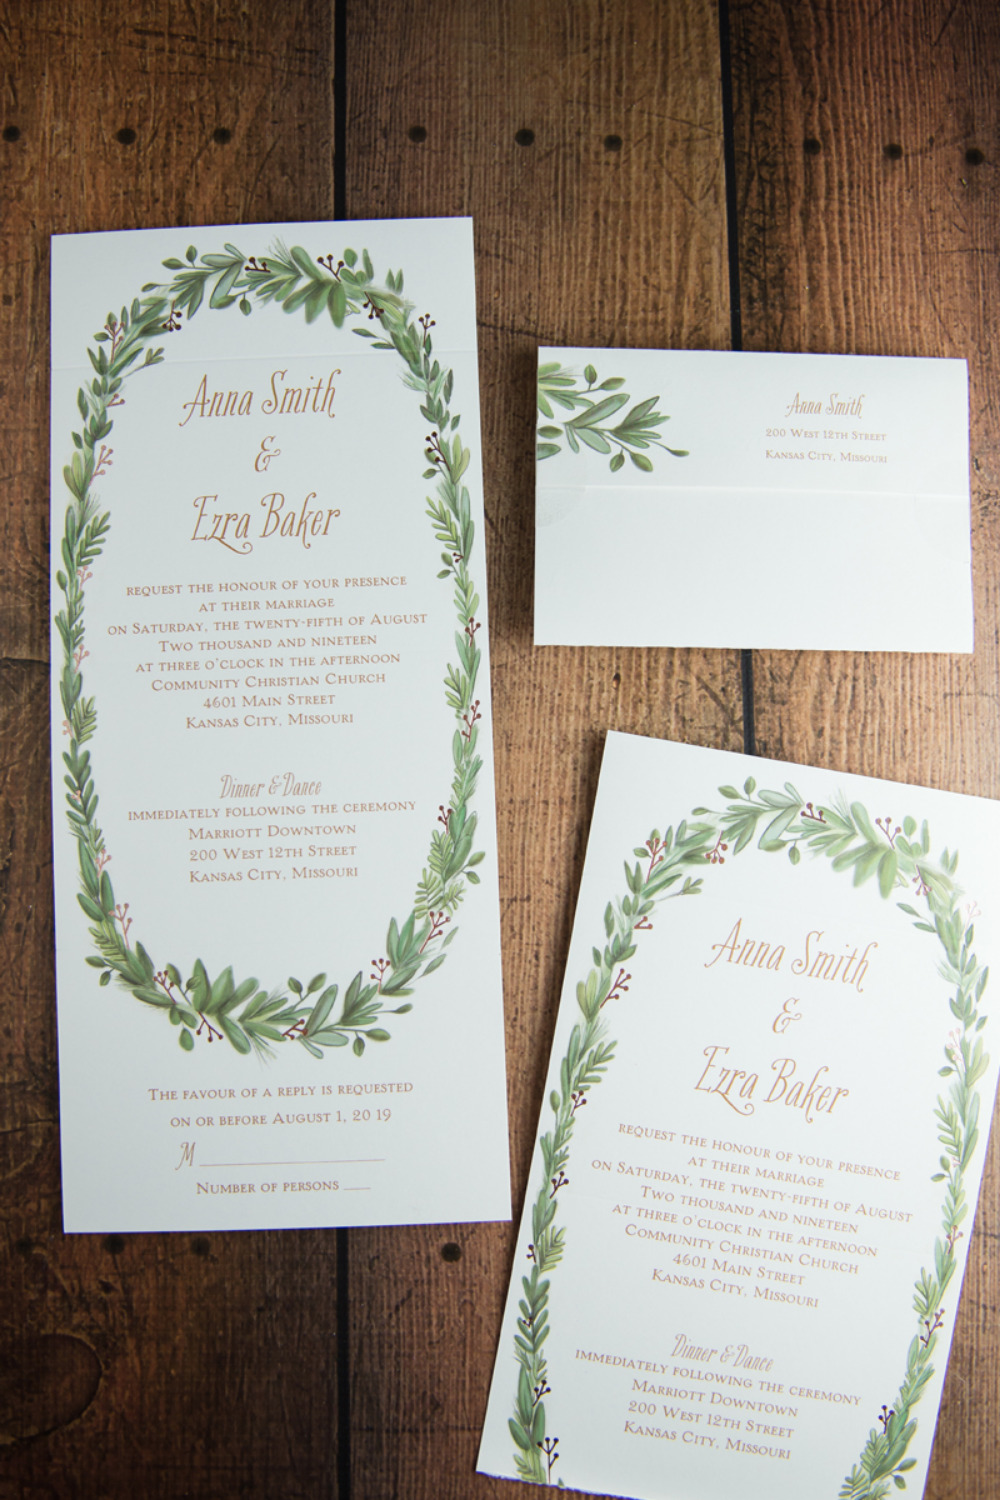 Trending - Wedding Invitations & Cakes For Cold Weather Weddings